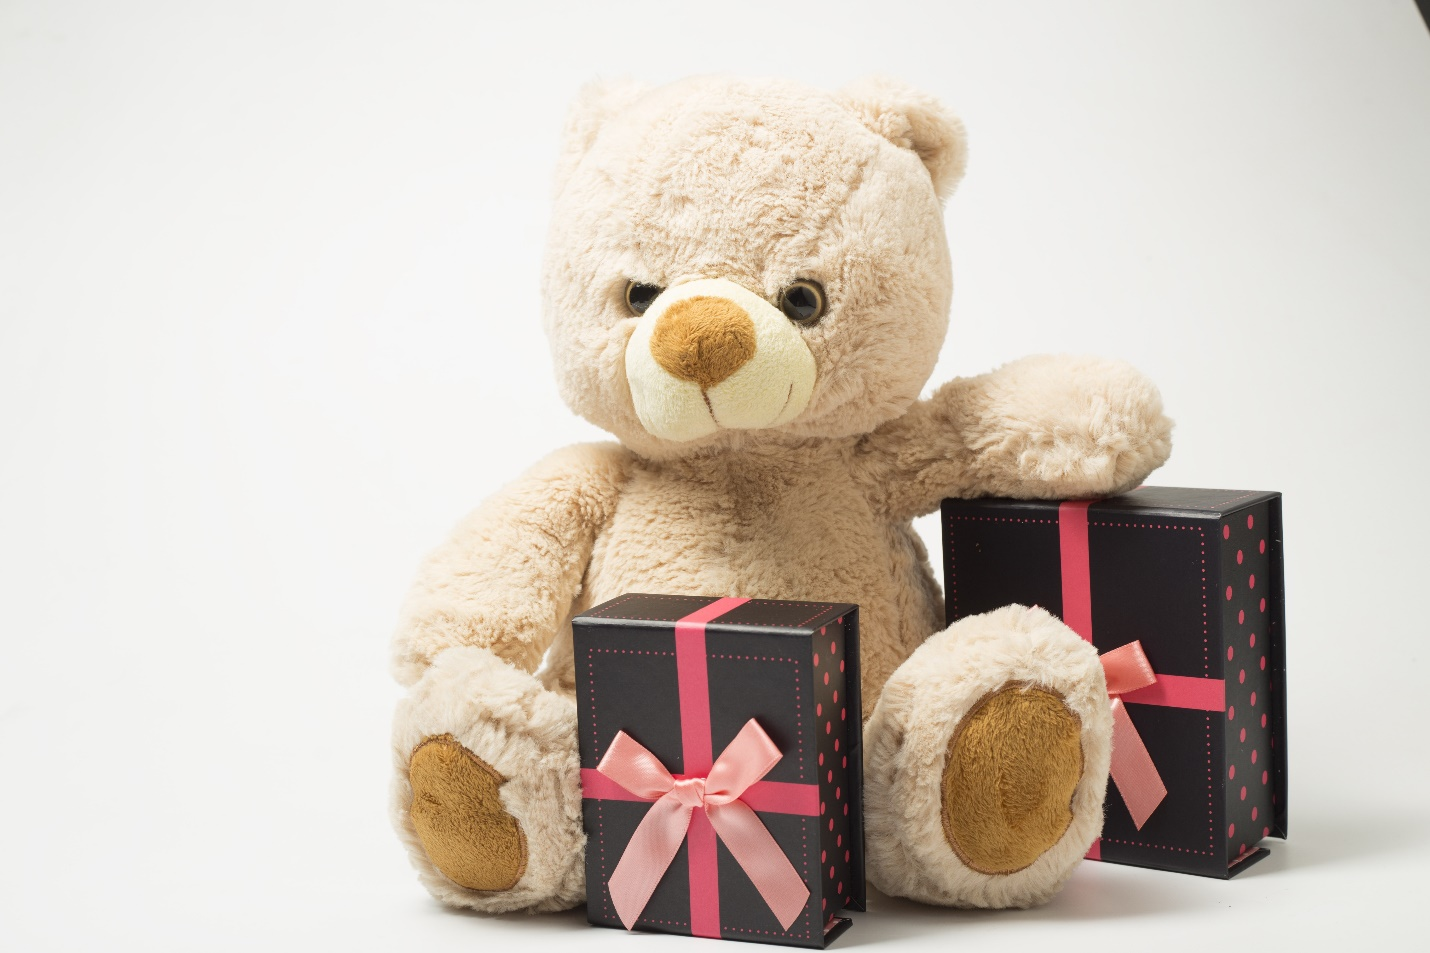 Gifts and toys for kids